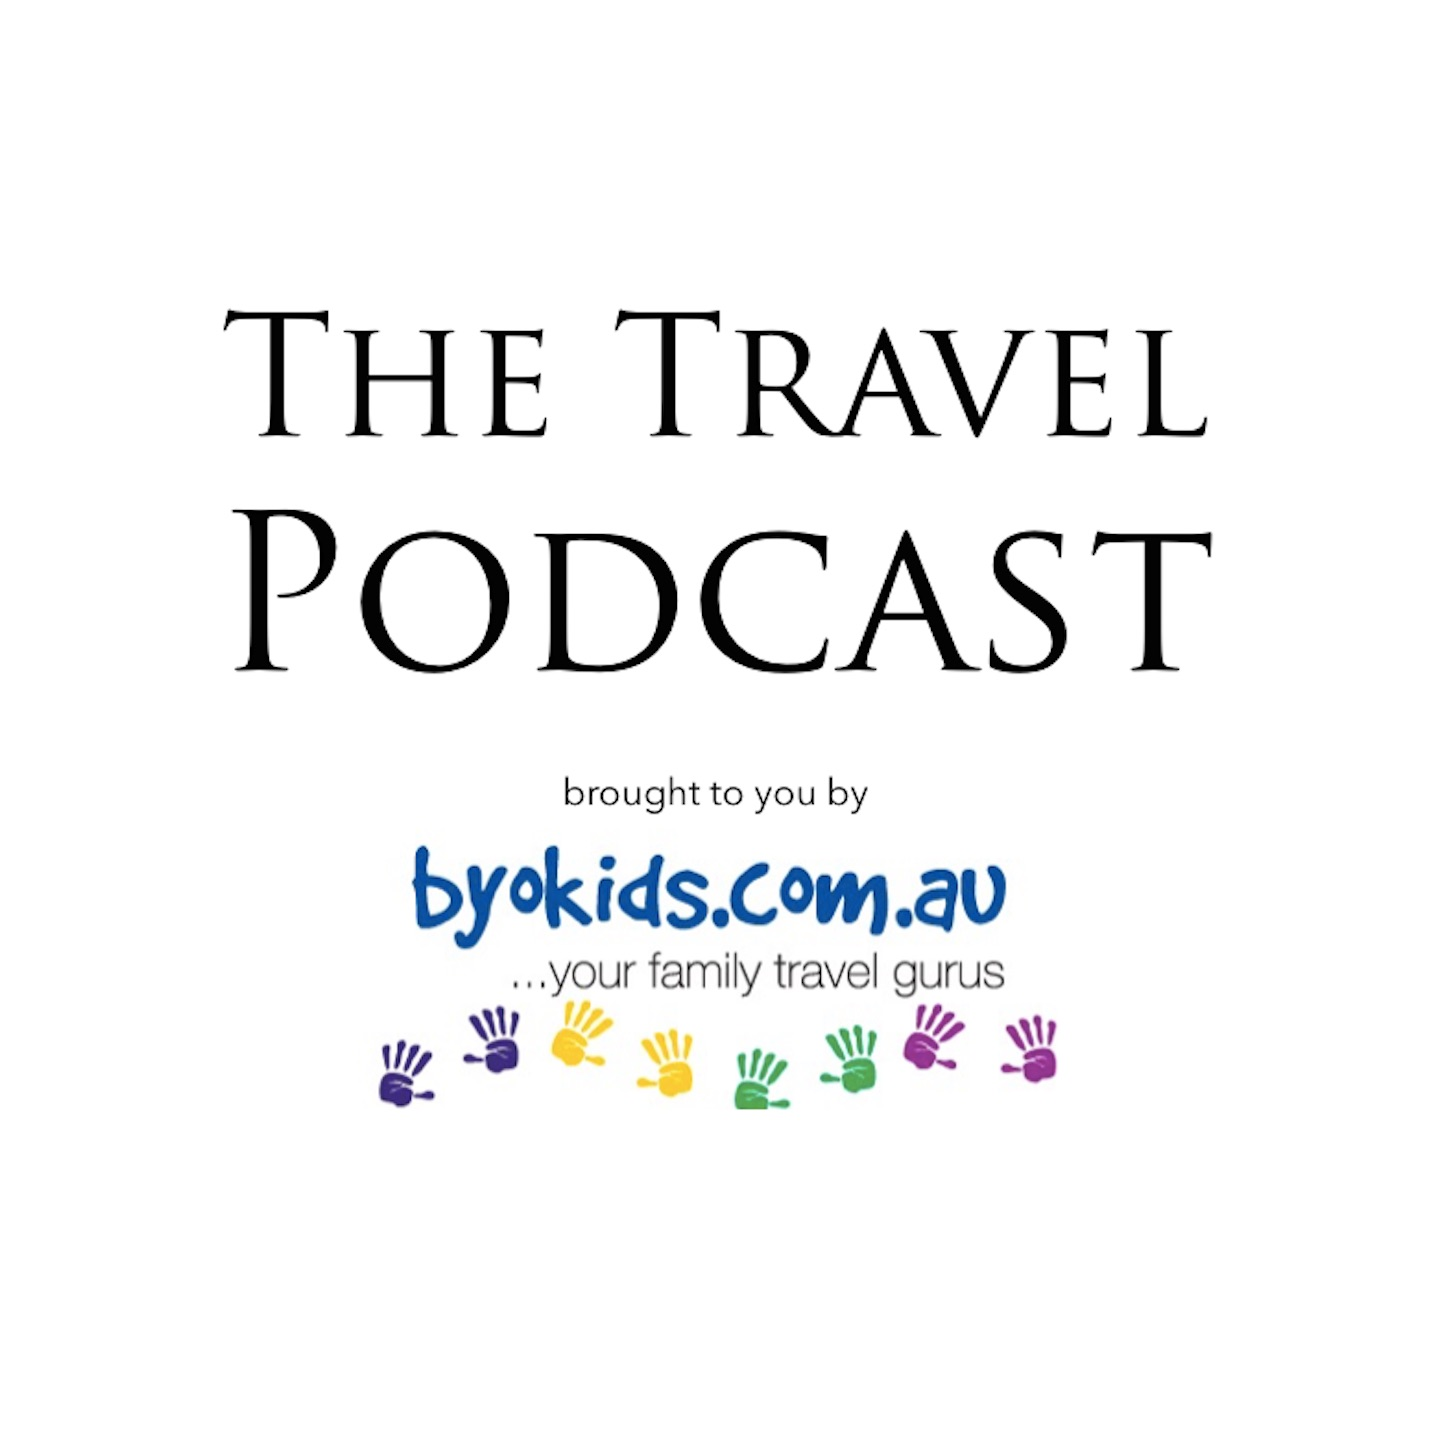 The Travel Podcast